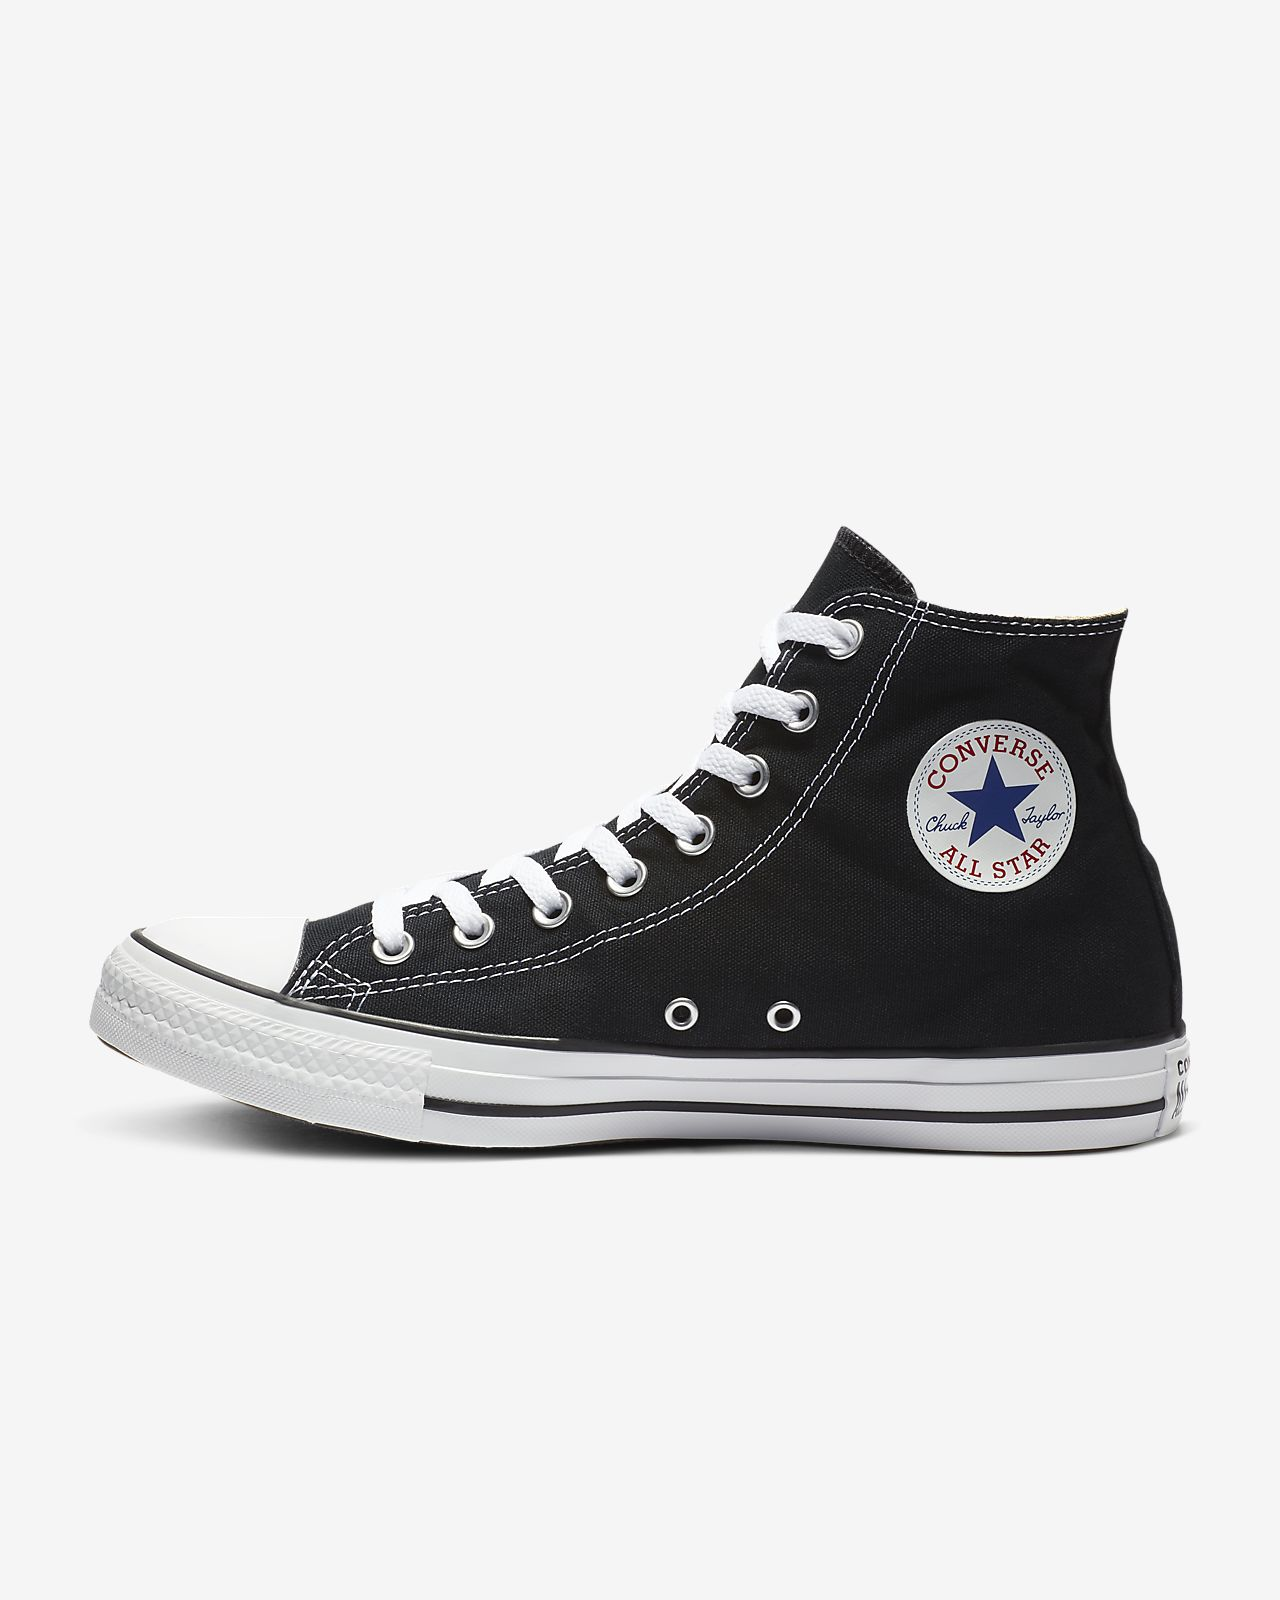 Converse Chuck Taylor All Star High Top Unisex Shoe